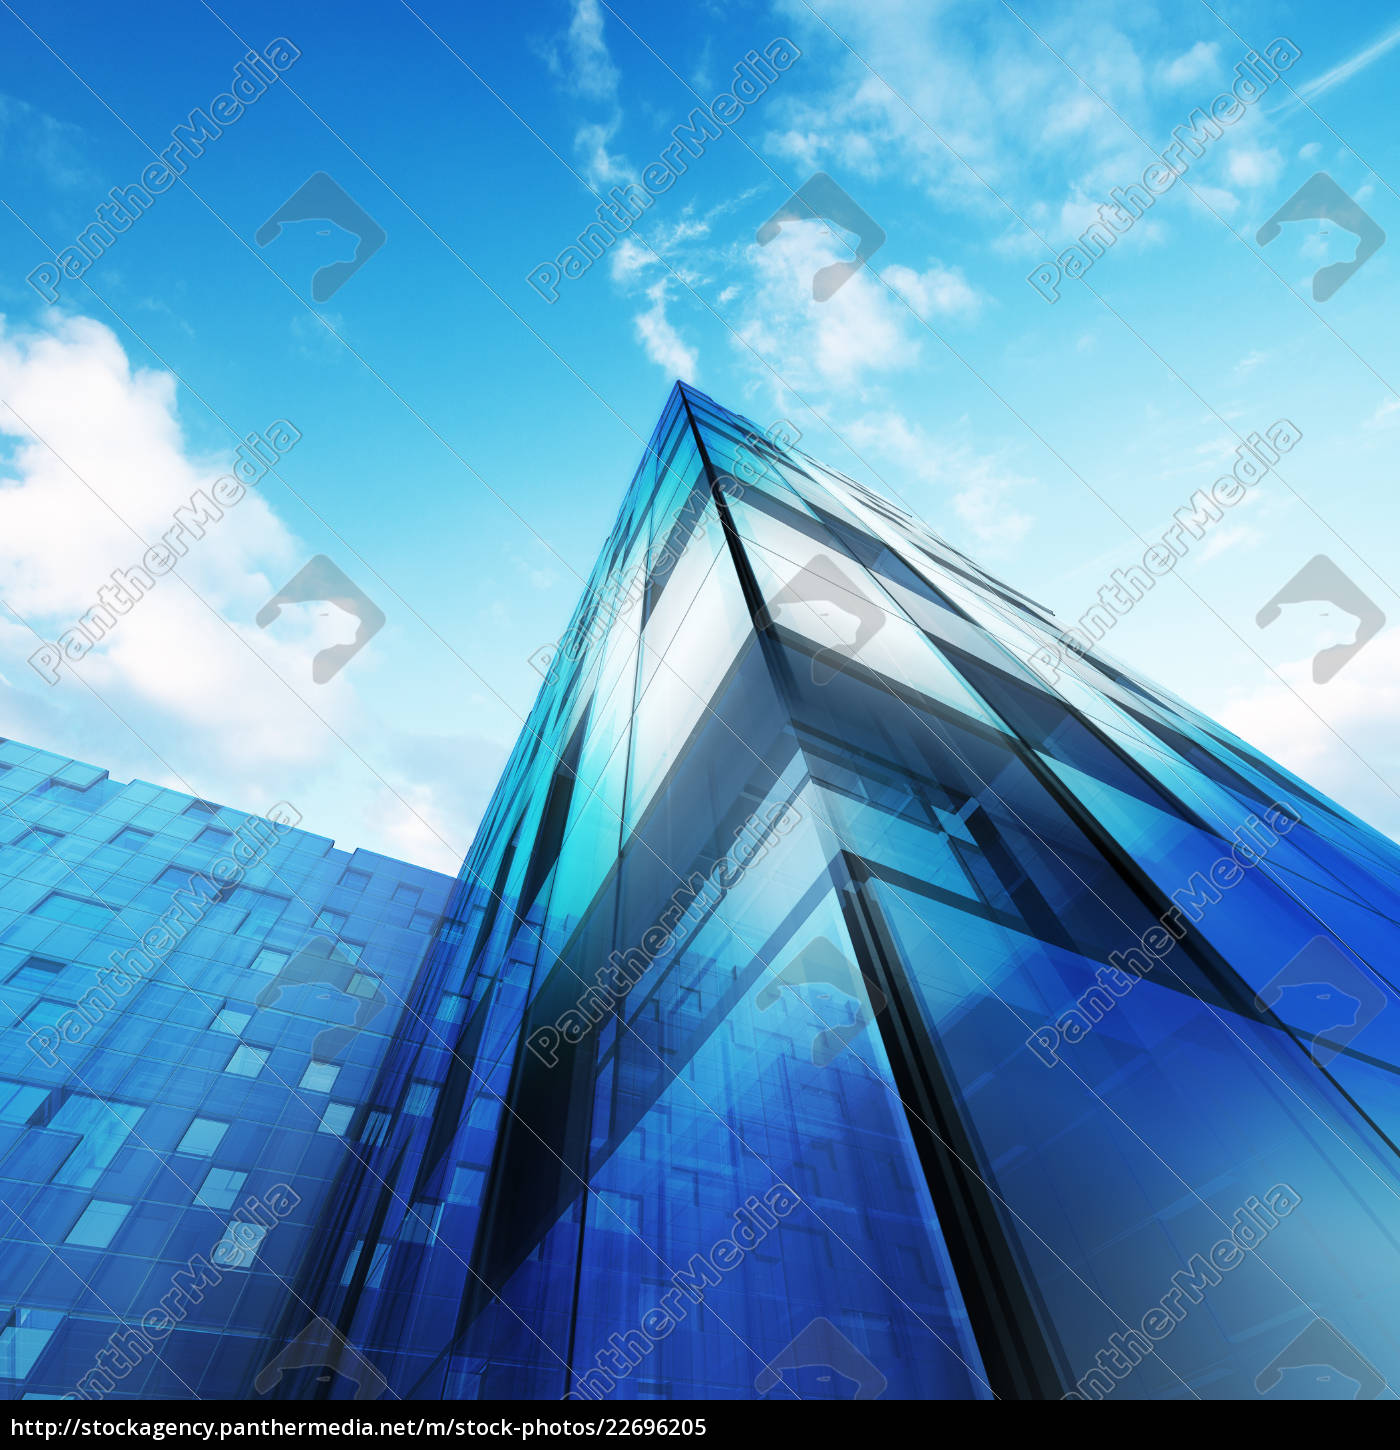 abstract, architecture, 3d - 22696205